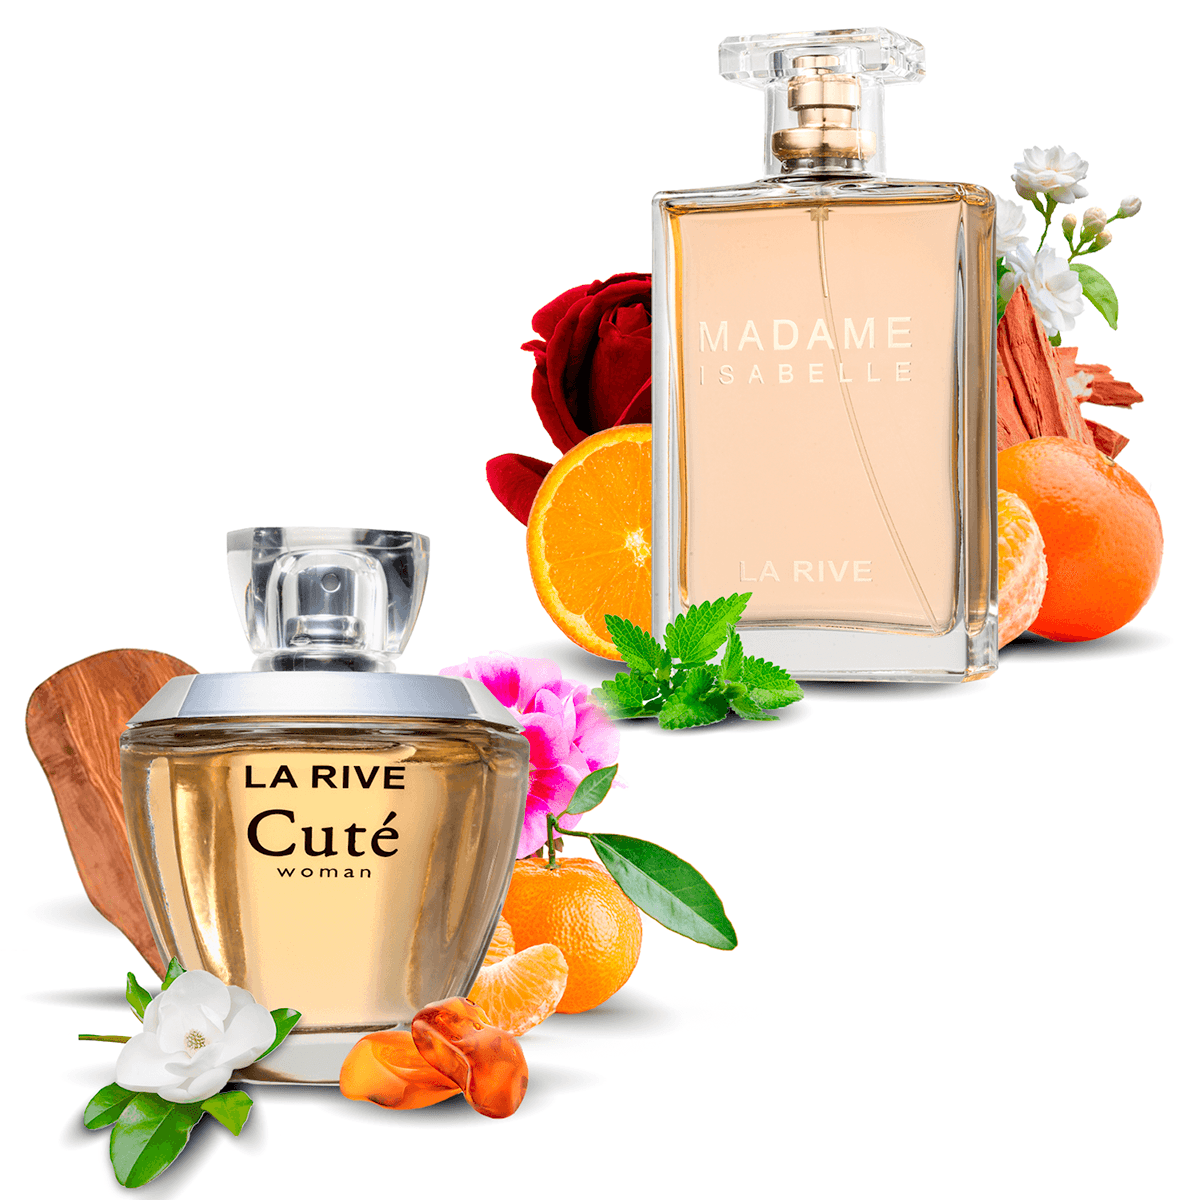 Kit 2  Perfumes La Rive Cuté 100ml + Madame Isabelle 90ml